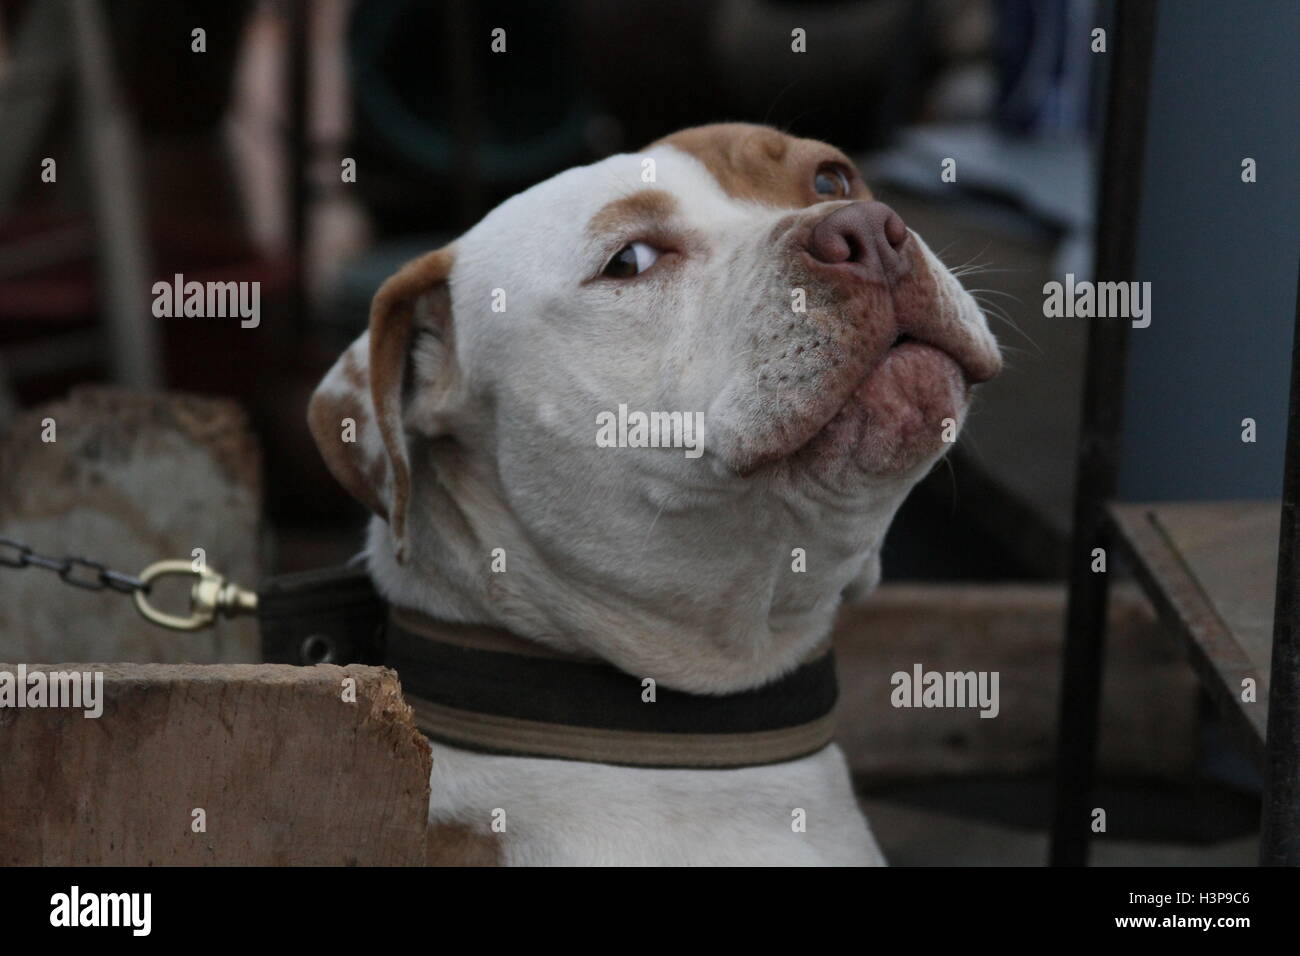 Pictures of a Pitbull in Baja California Mexico, city of rosarito - Stock Image